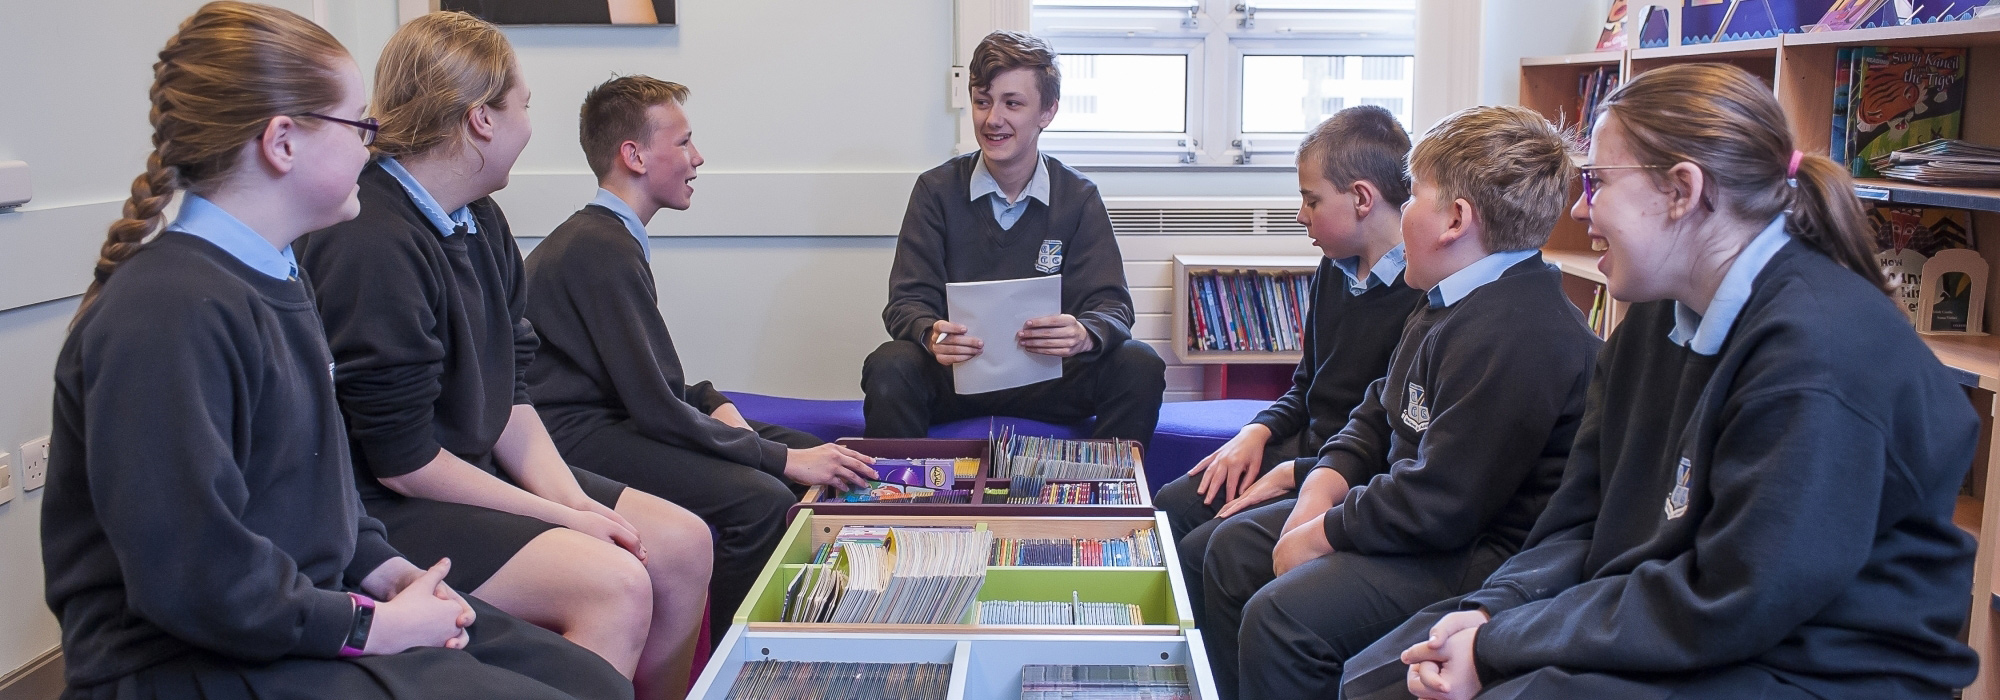 Pupils in library at Oakwood Academy